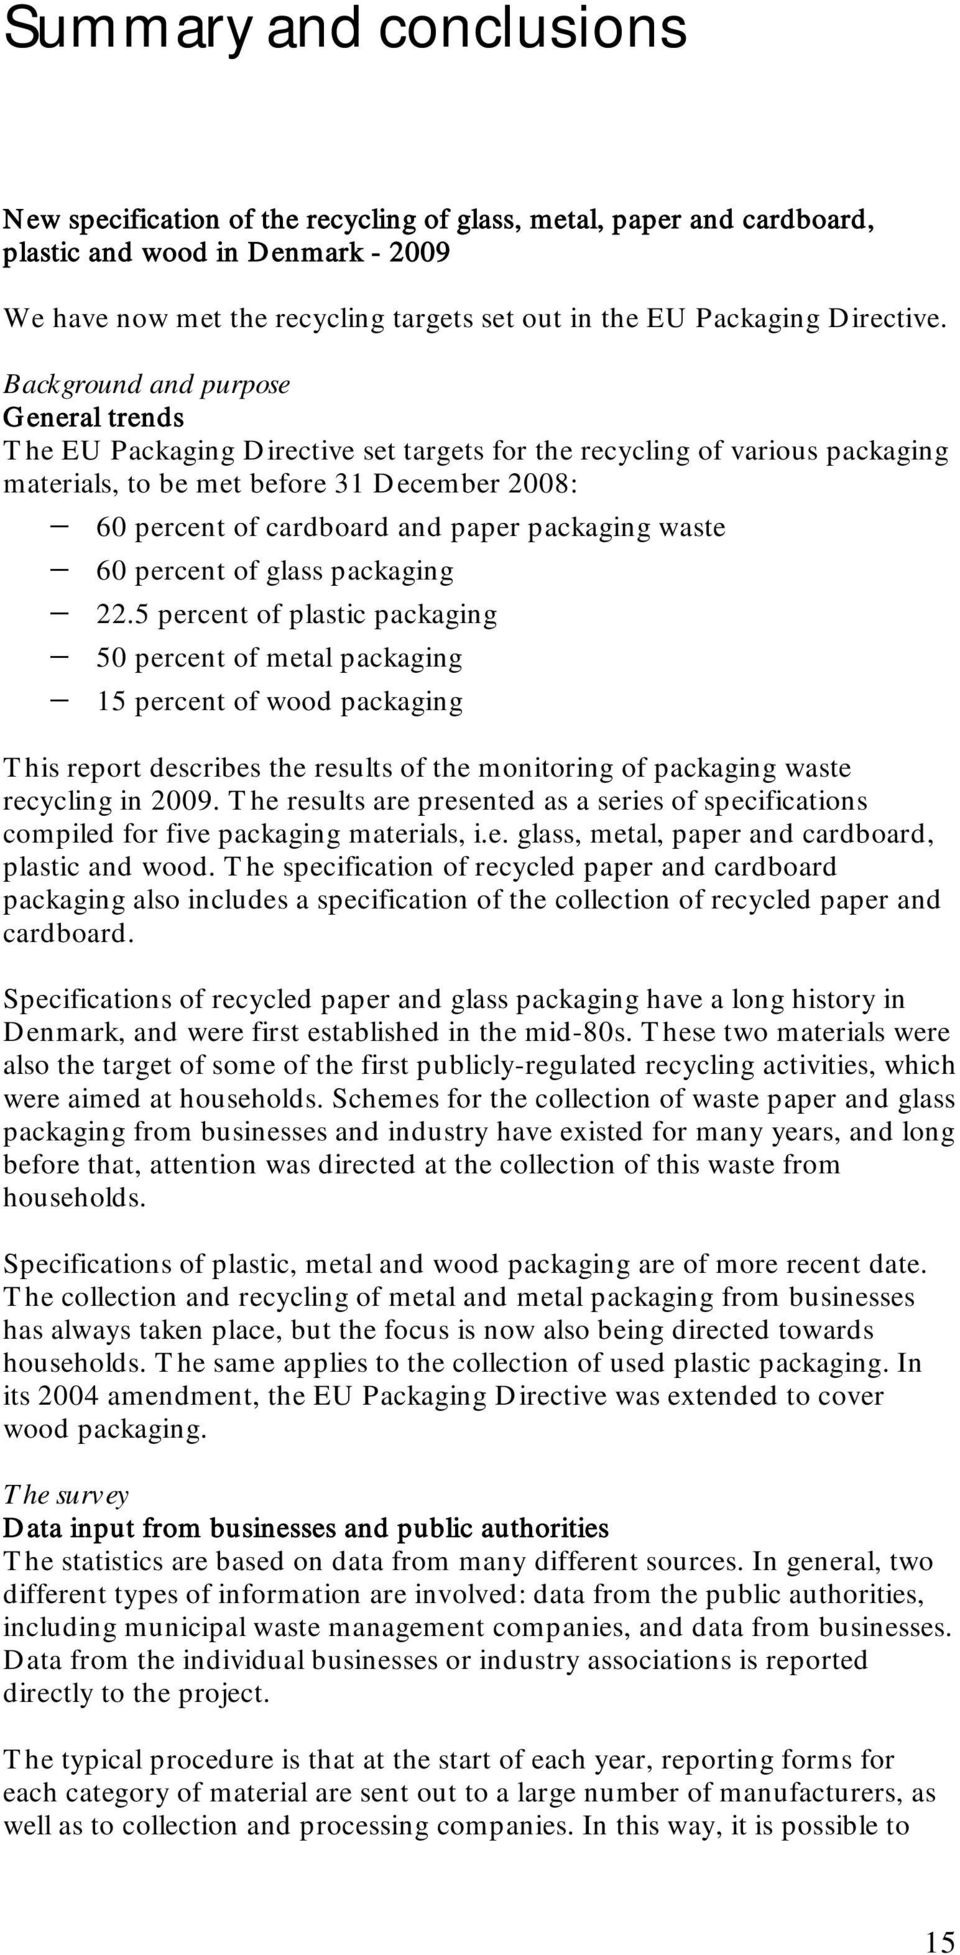 Background and purpose General trends The EU Packaging Directive set targets for the recycling of various packaging materials, to be met before 31 December 2008: 60 percent of cardboard and paper